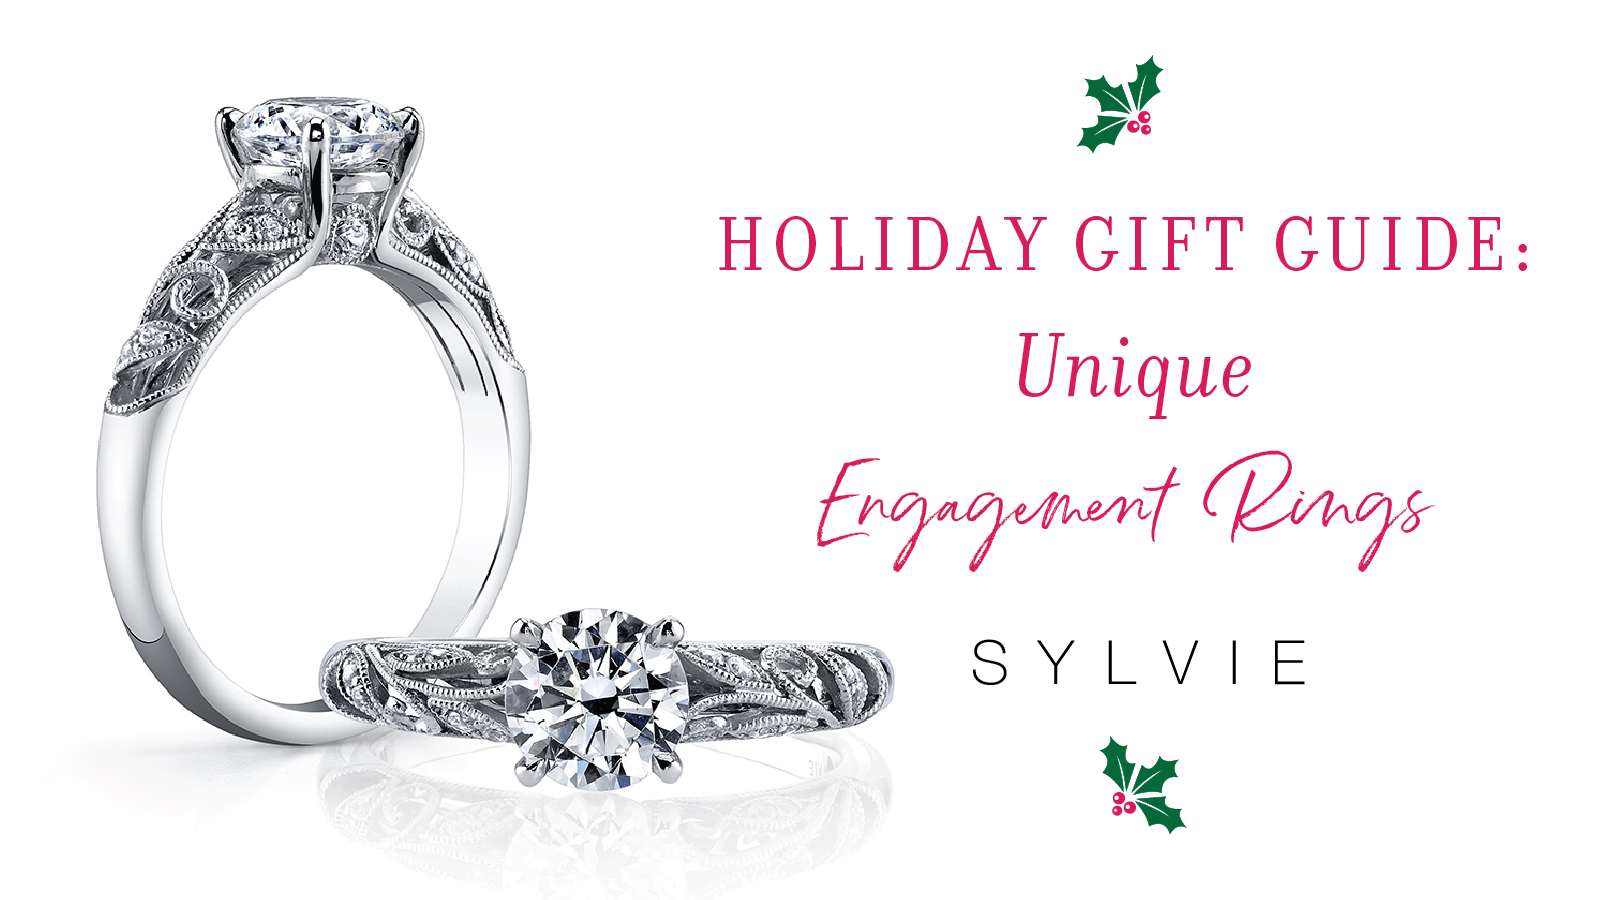 Holiday Gift Guide: Unique Engagement Rings